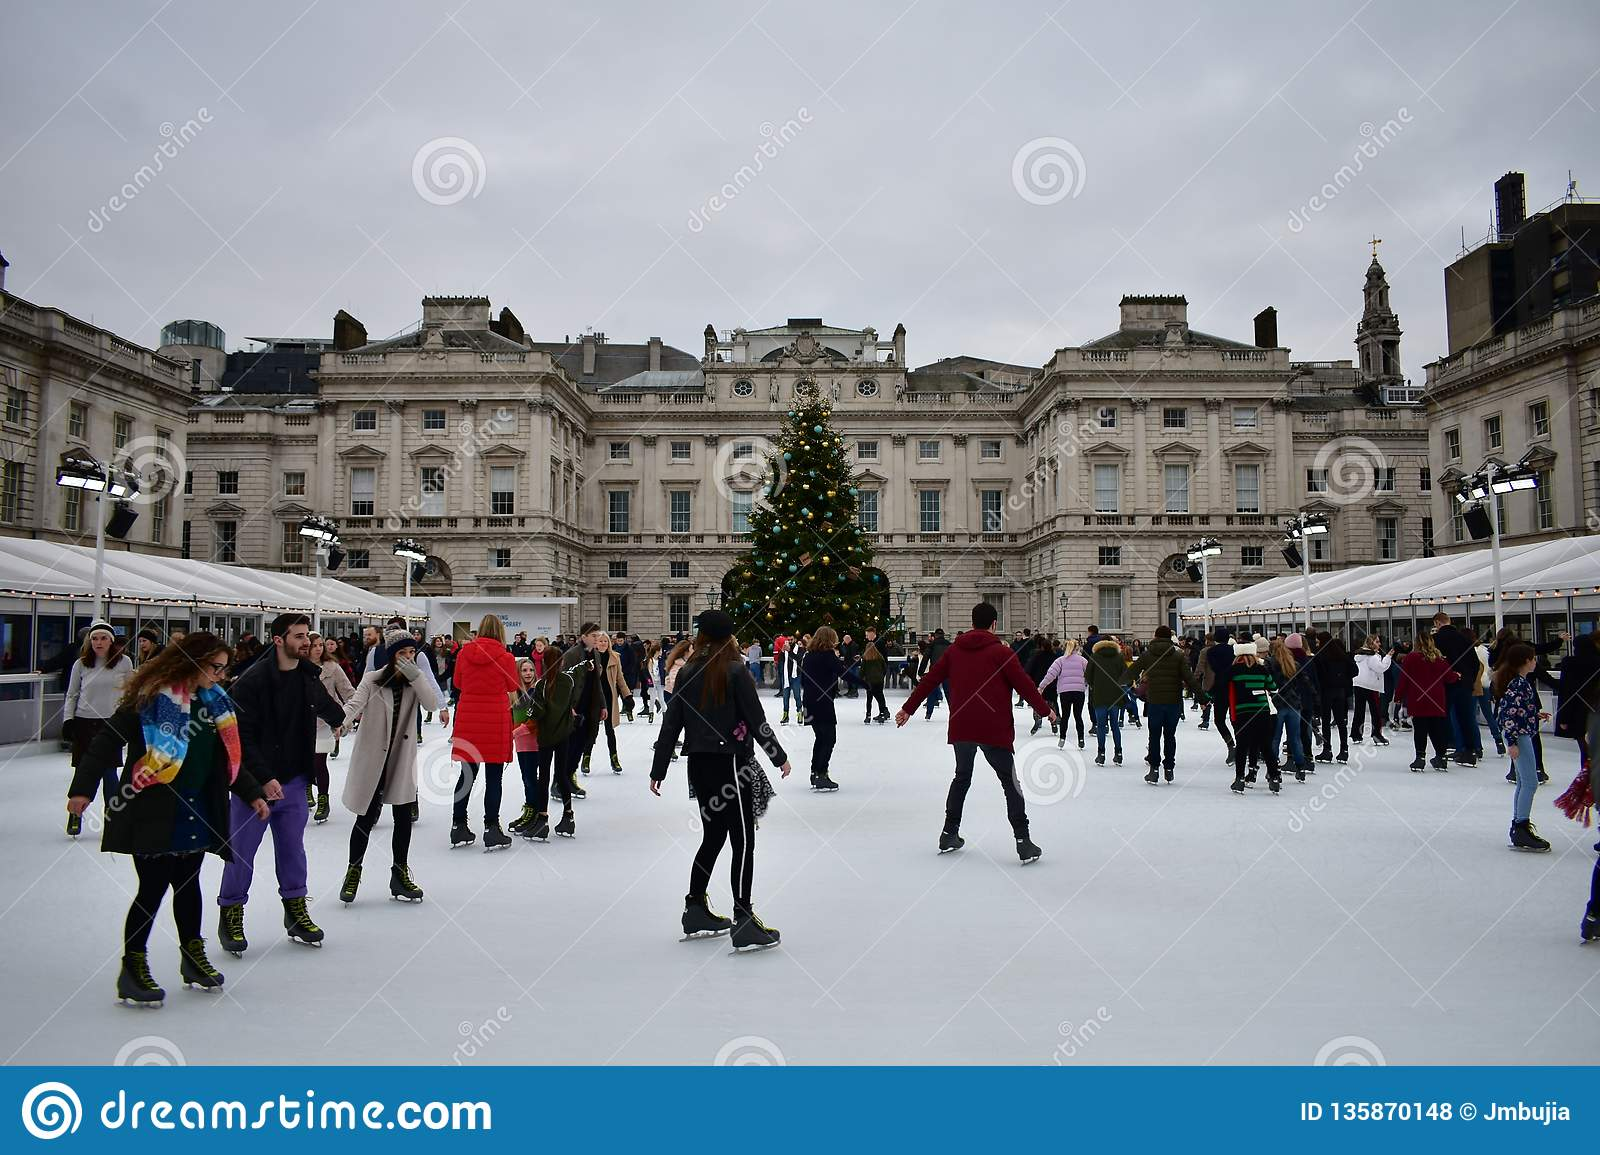 Christmas Ice Skating London.People Skating On Ice At The Somerset House Christmas Ice